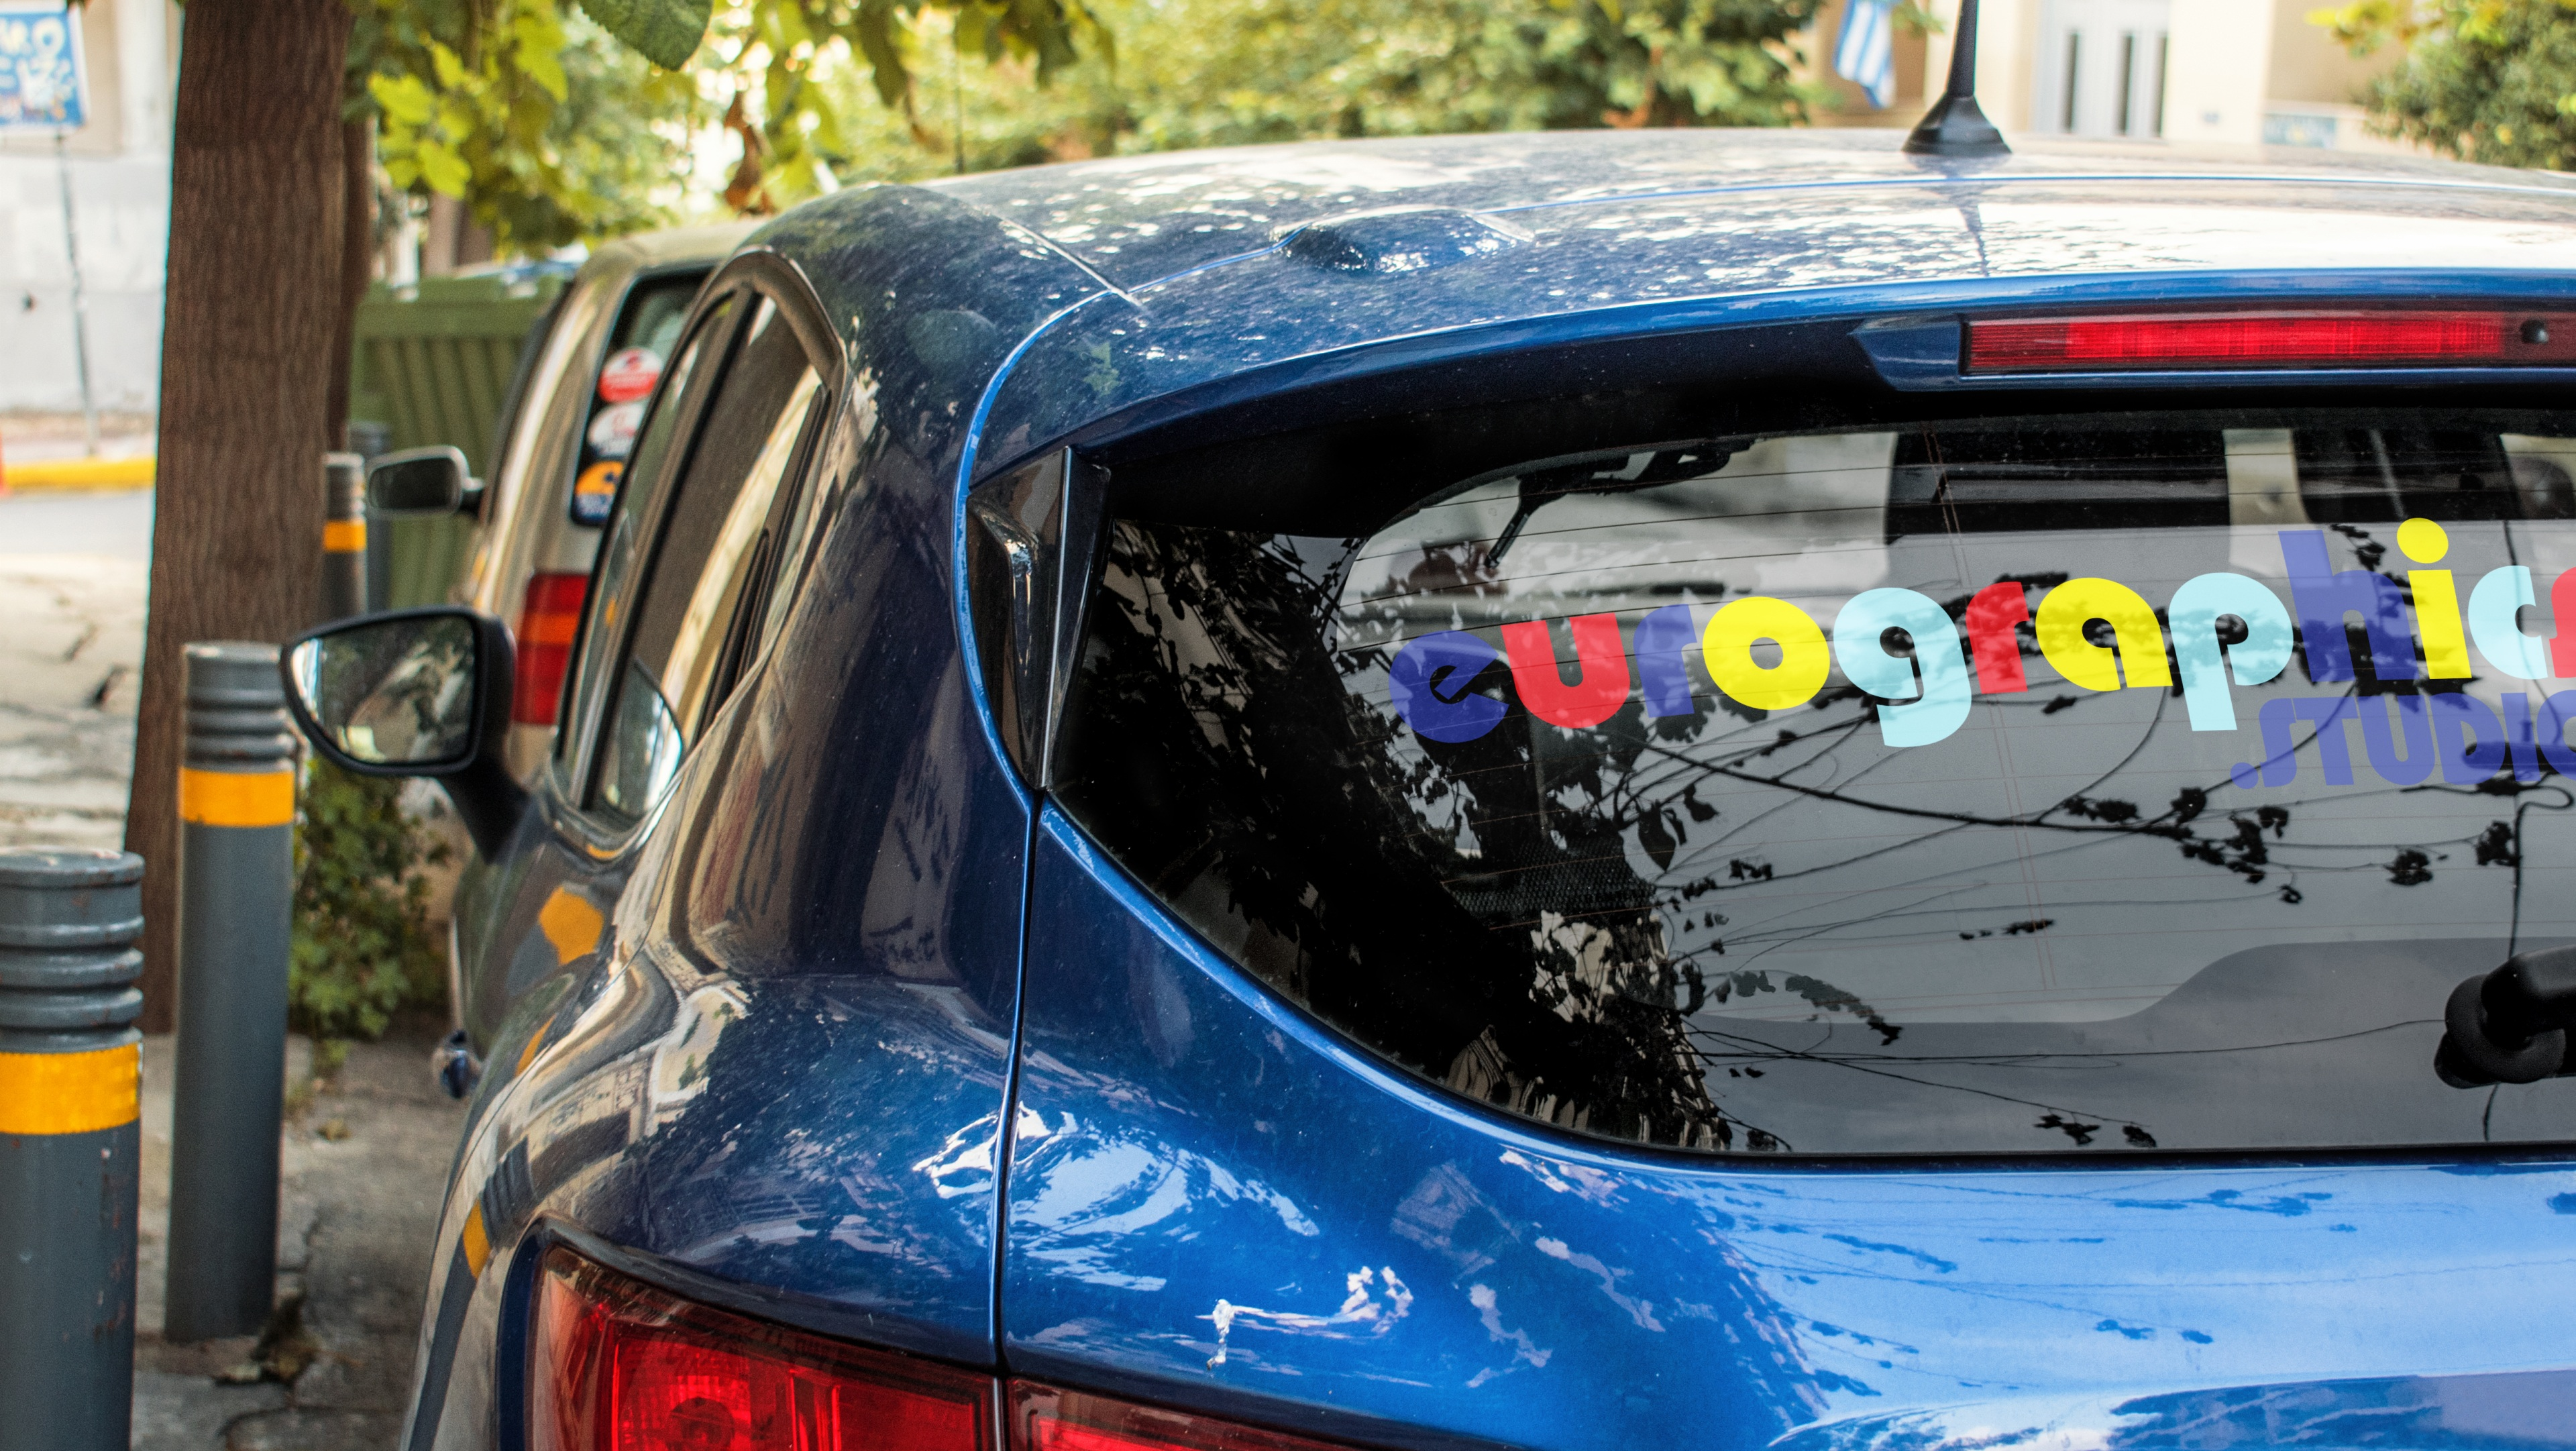 Car with window graphics